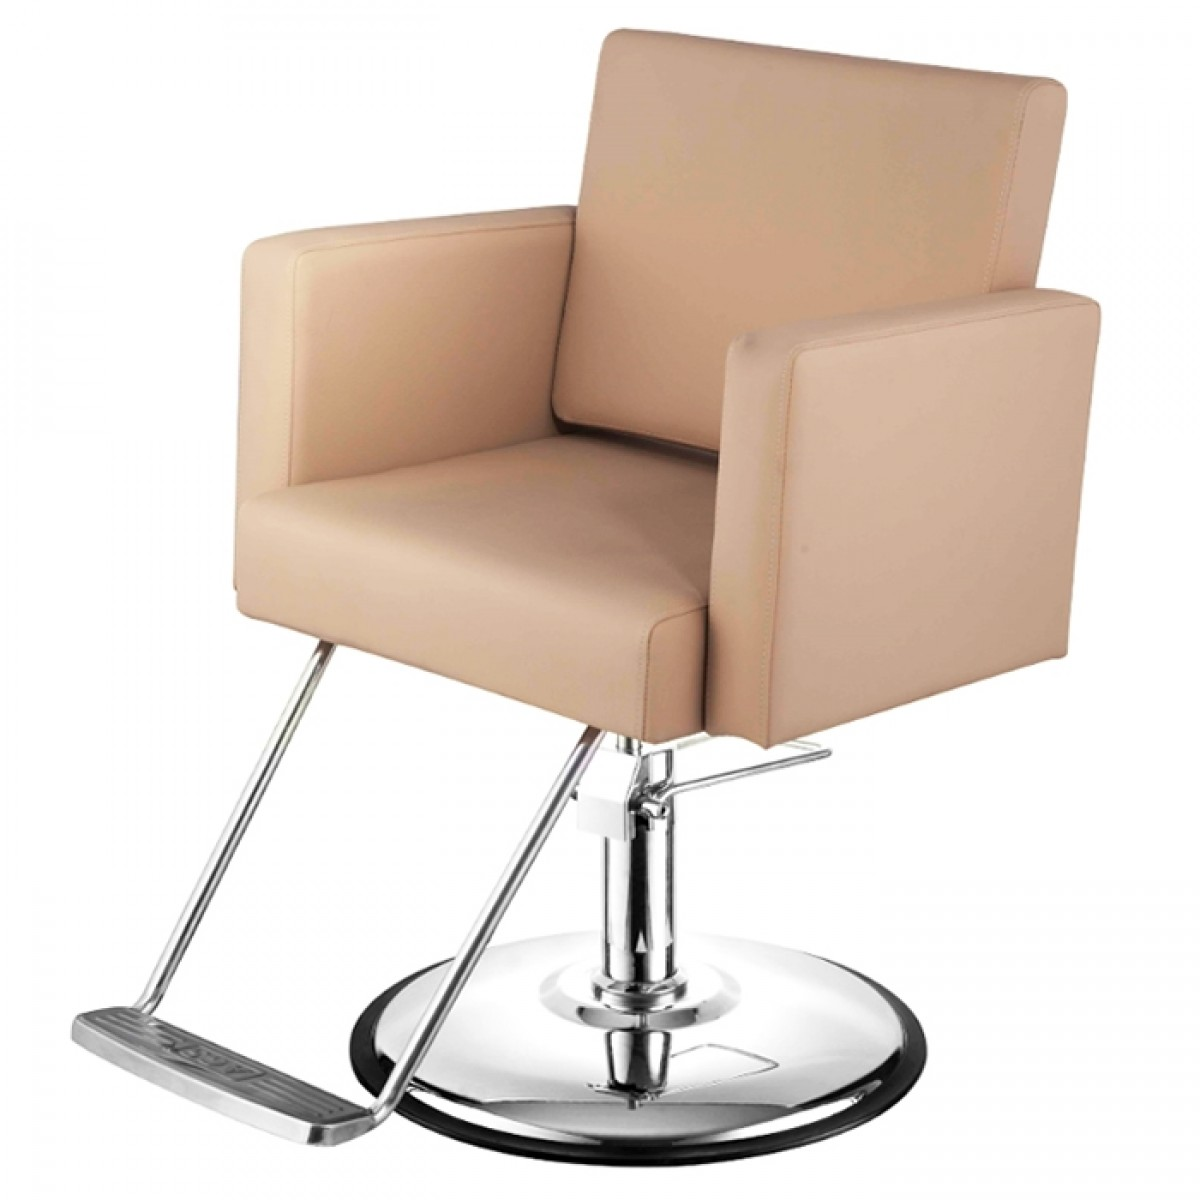 Furniture Canada Free Shipping Hair Styling Chairs Canada Expert Event